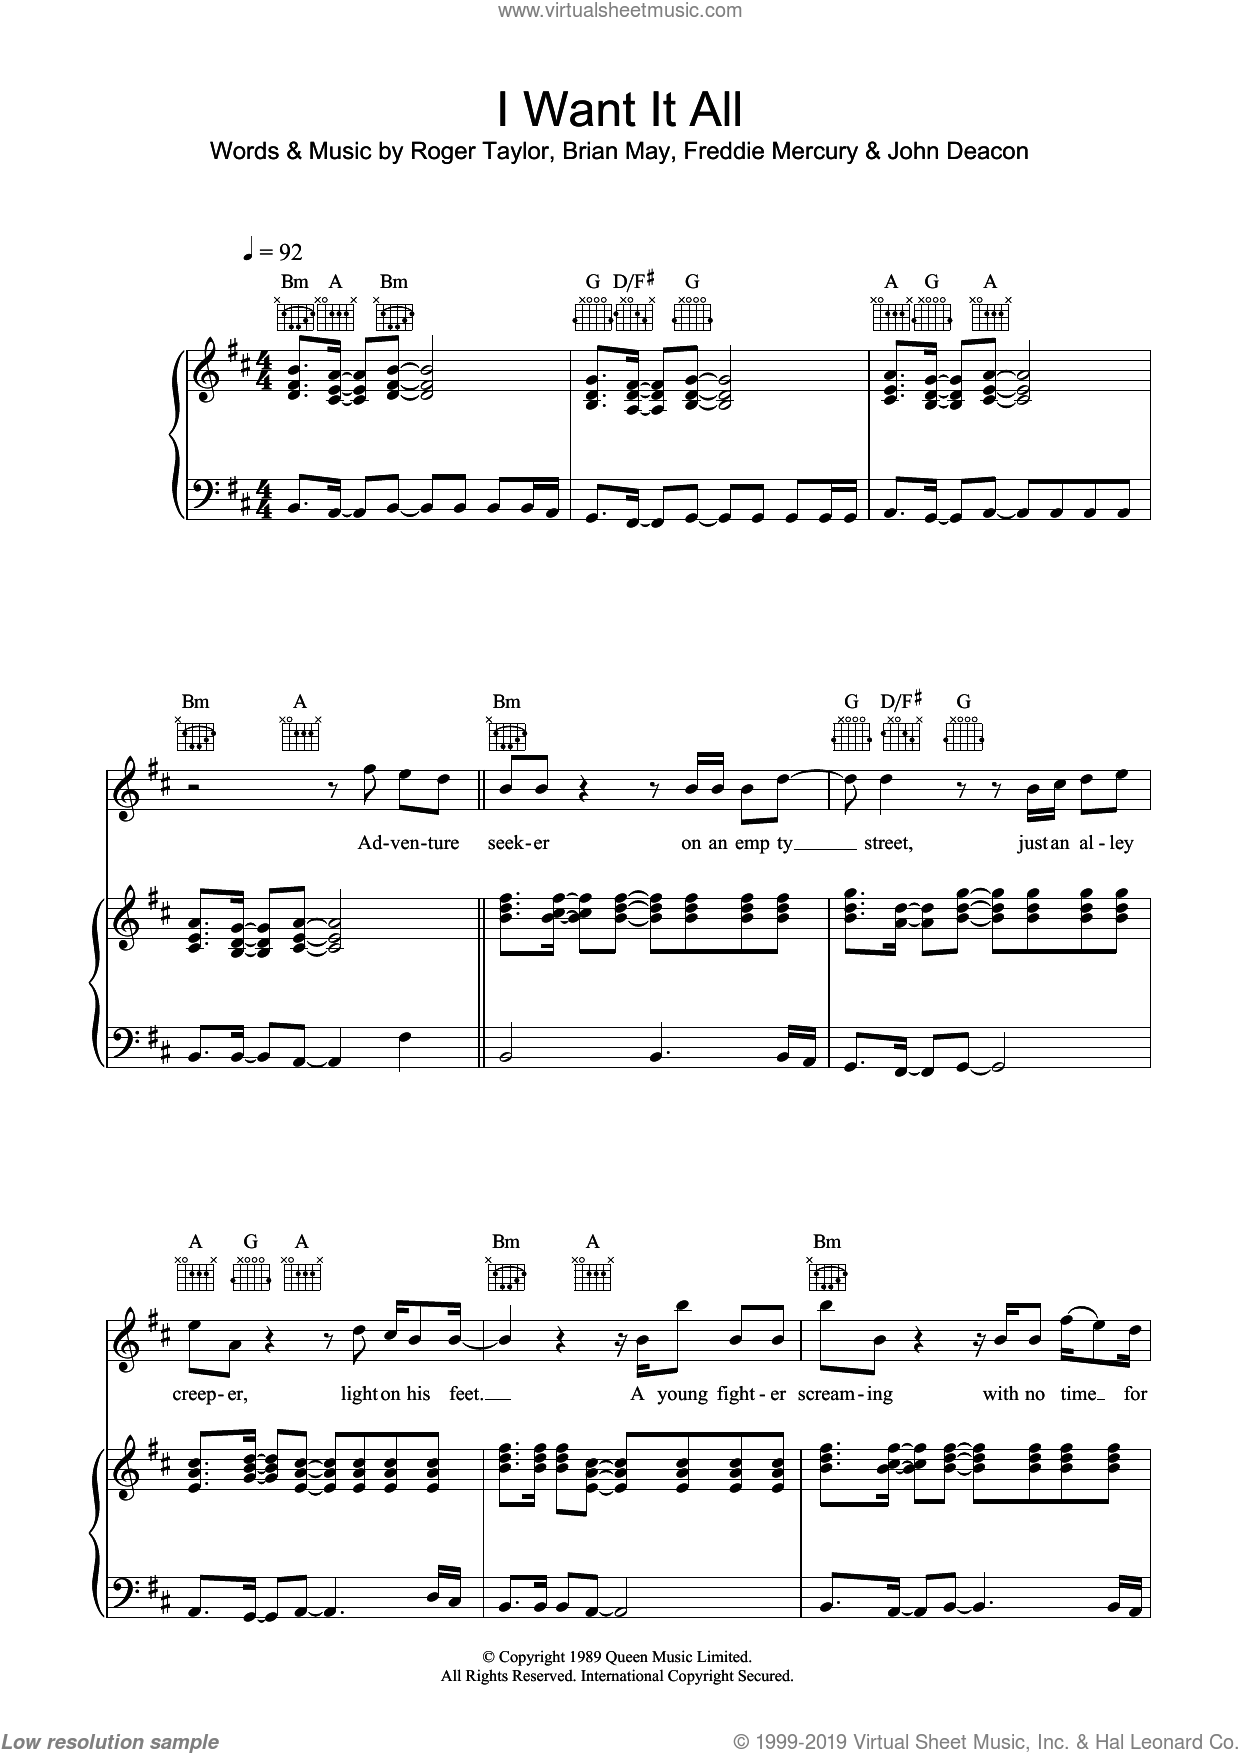 I Want It All sheet music for voice, piano or guitar by Queen, Brian May, Freddie Mercury, John Deacon and Roger Taylor, intermediate skill level